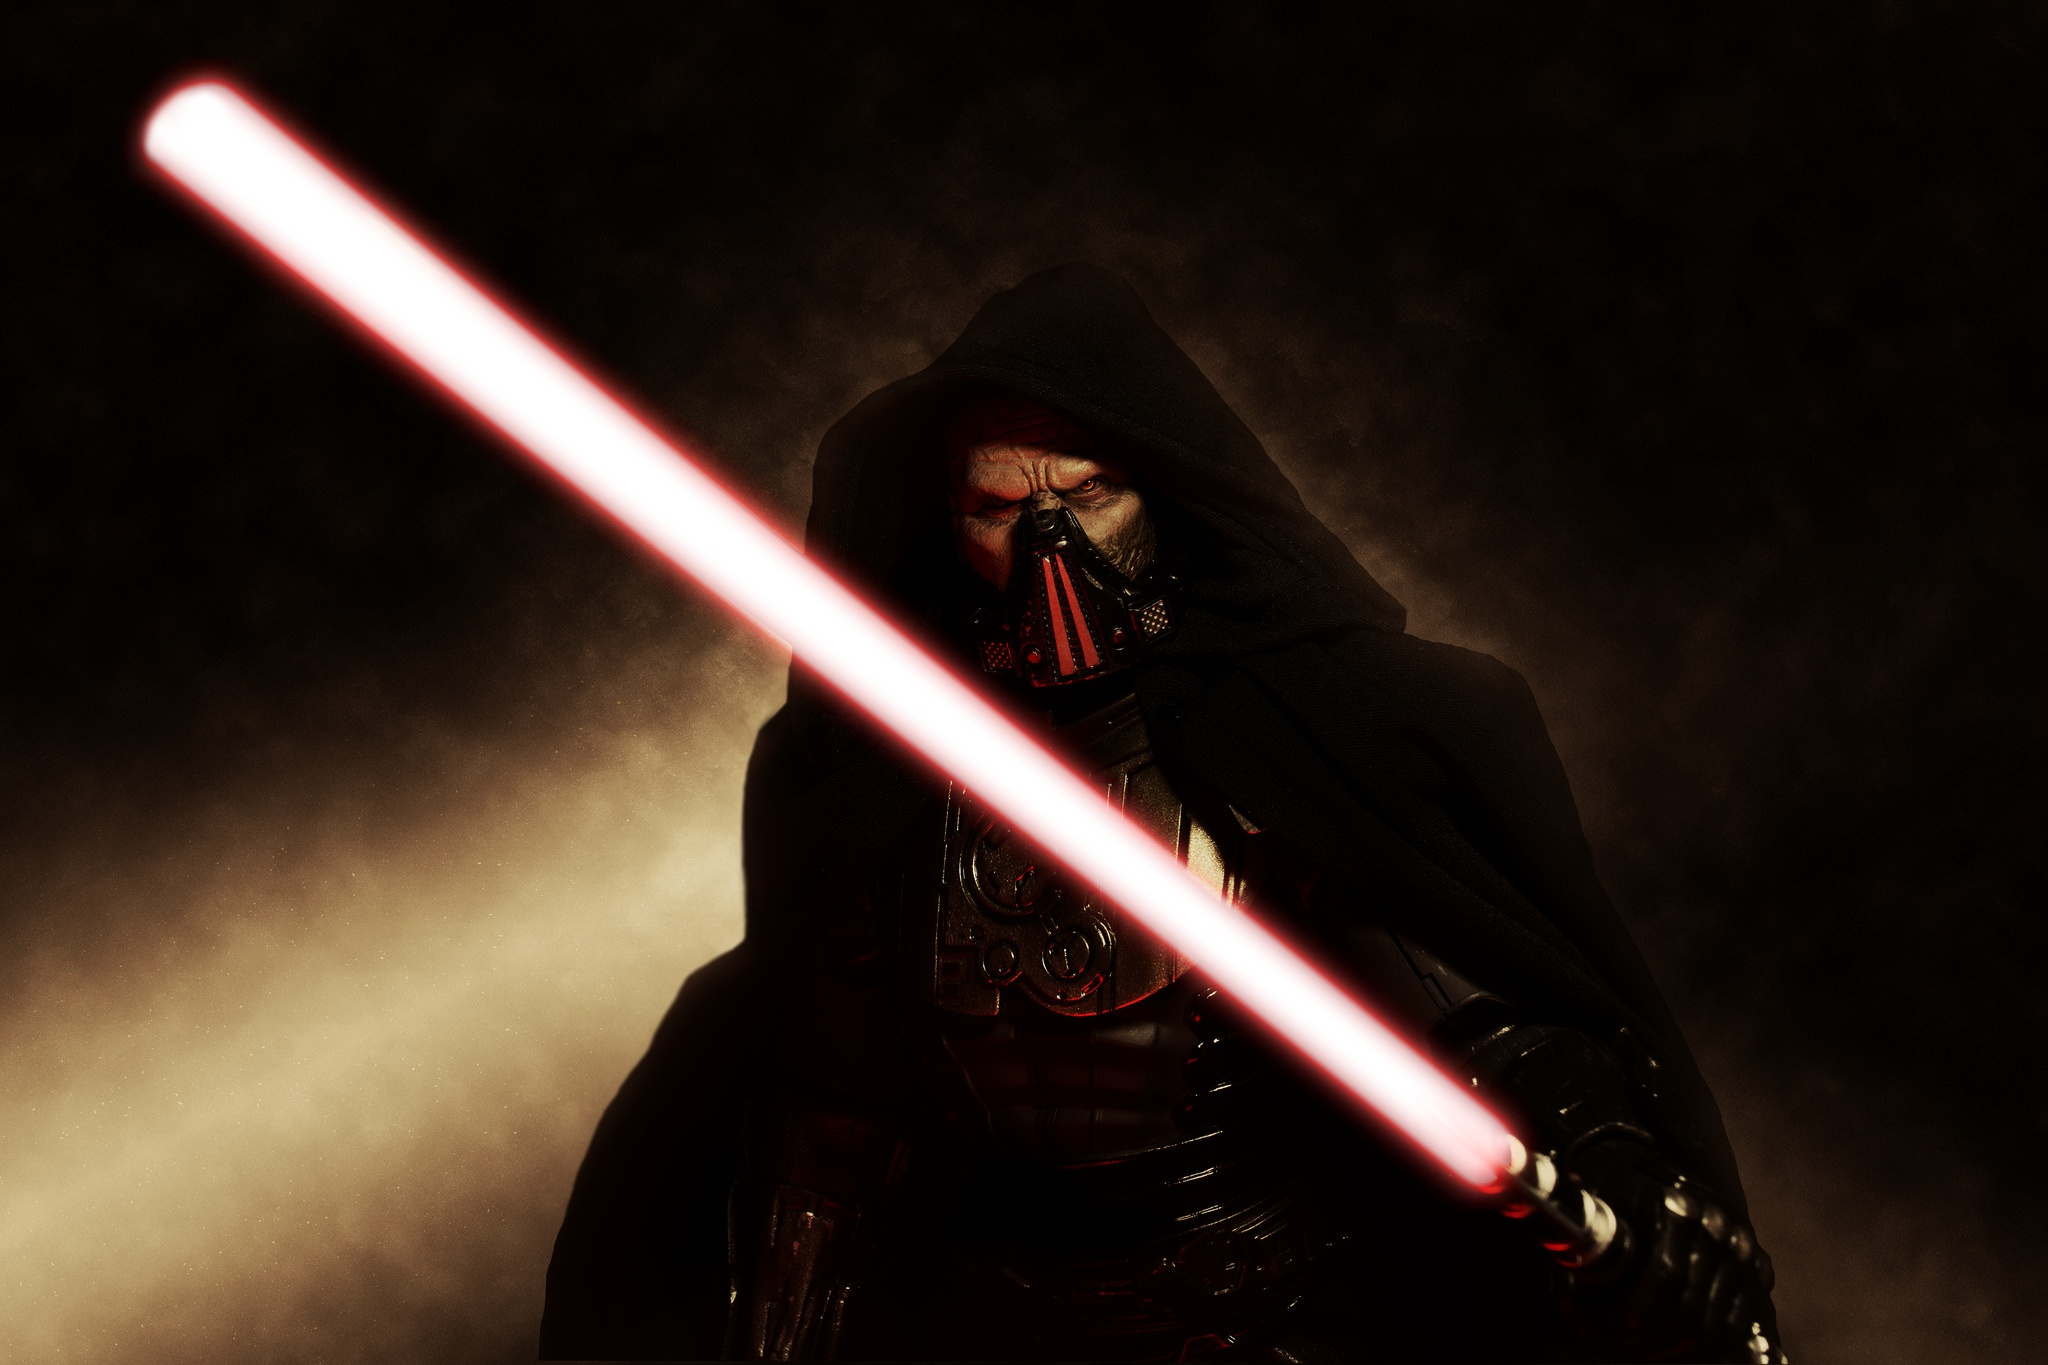 Sith Star Wars Darkness 373782 Hd Wallpaper Backgrounds Download